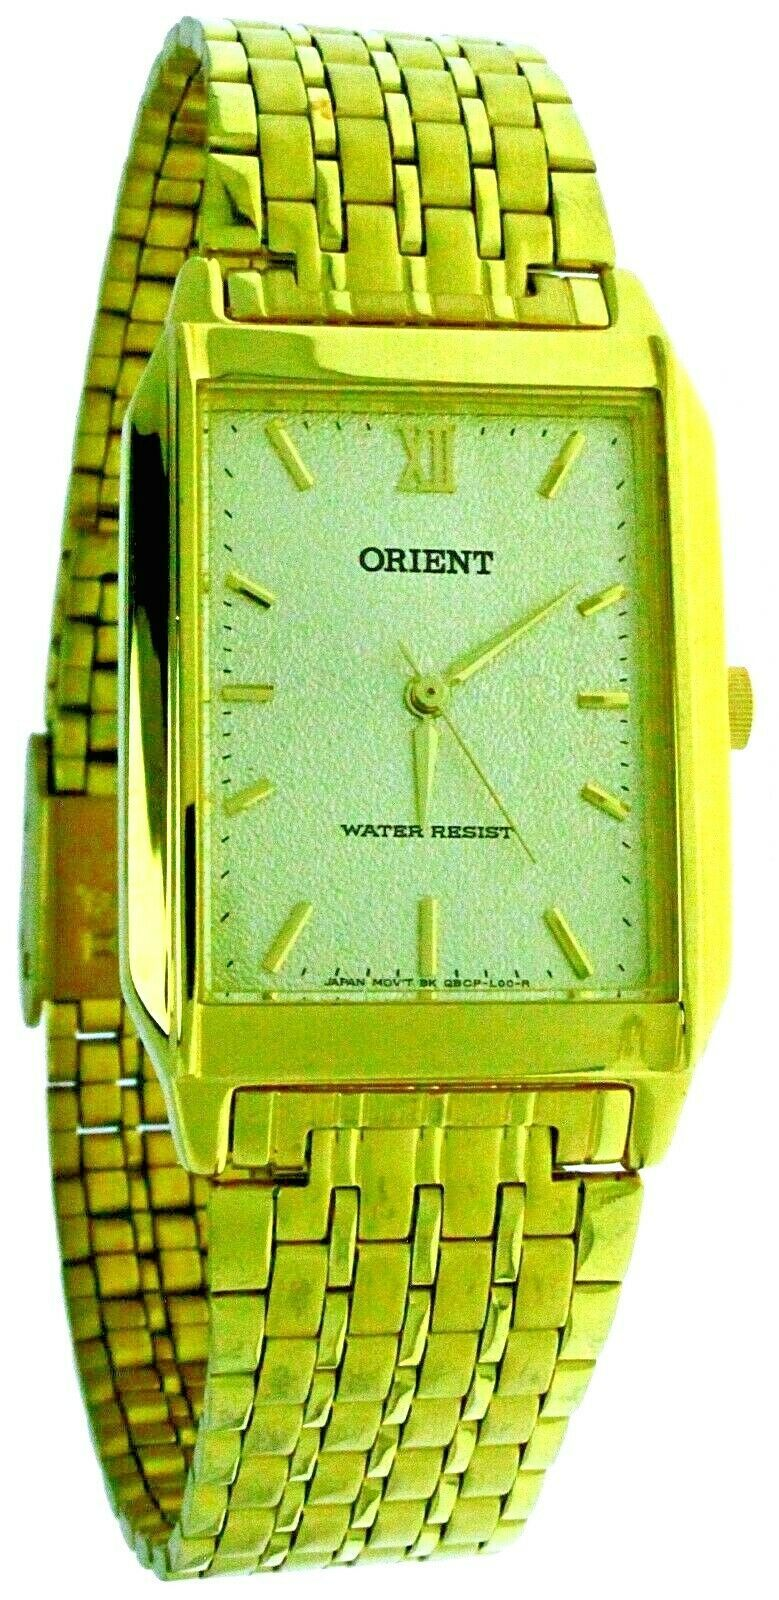 Primary image for New ORIENT Quartz Rectangular Yellow Gold Tone Case & Dial Watch Water Resistant